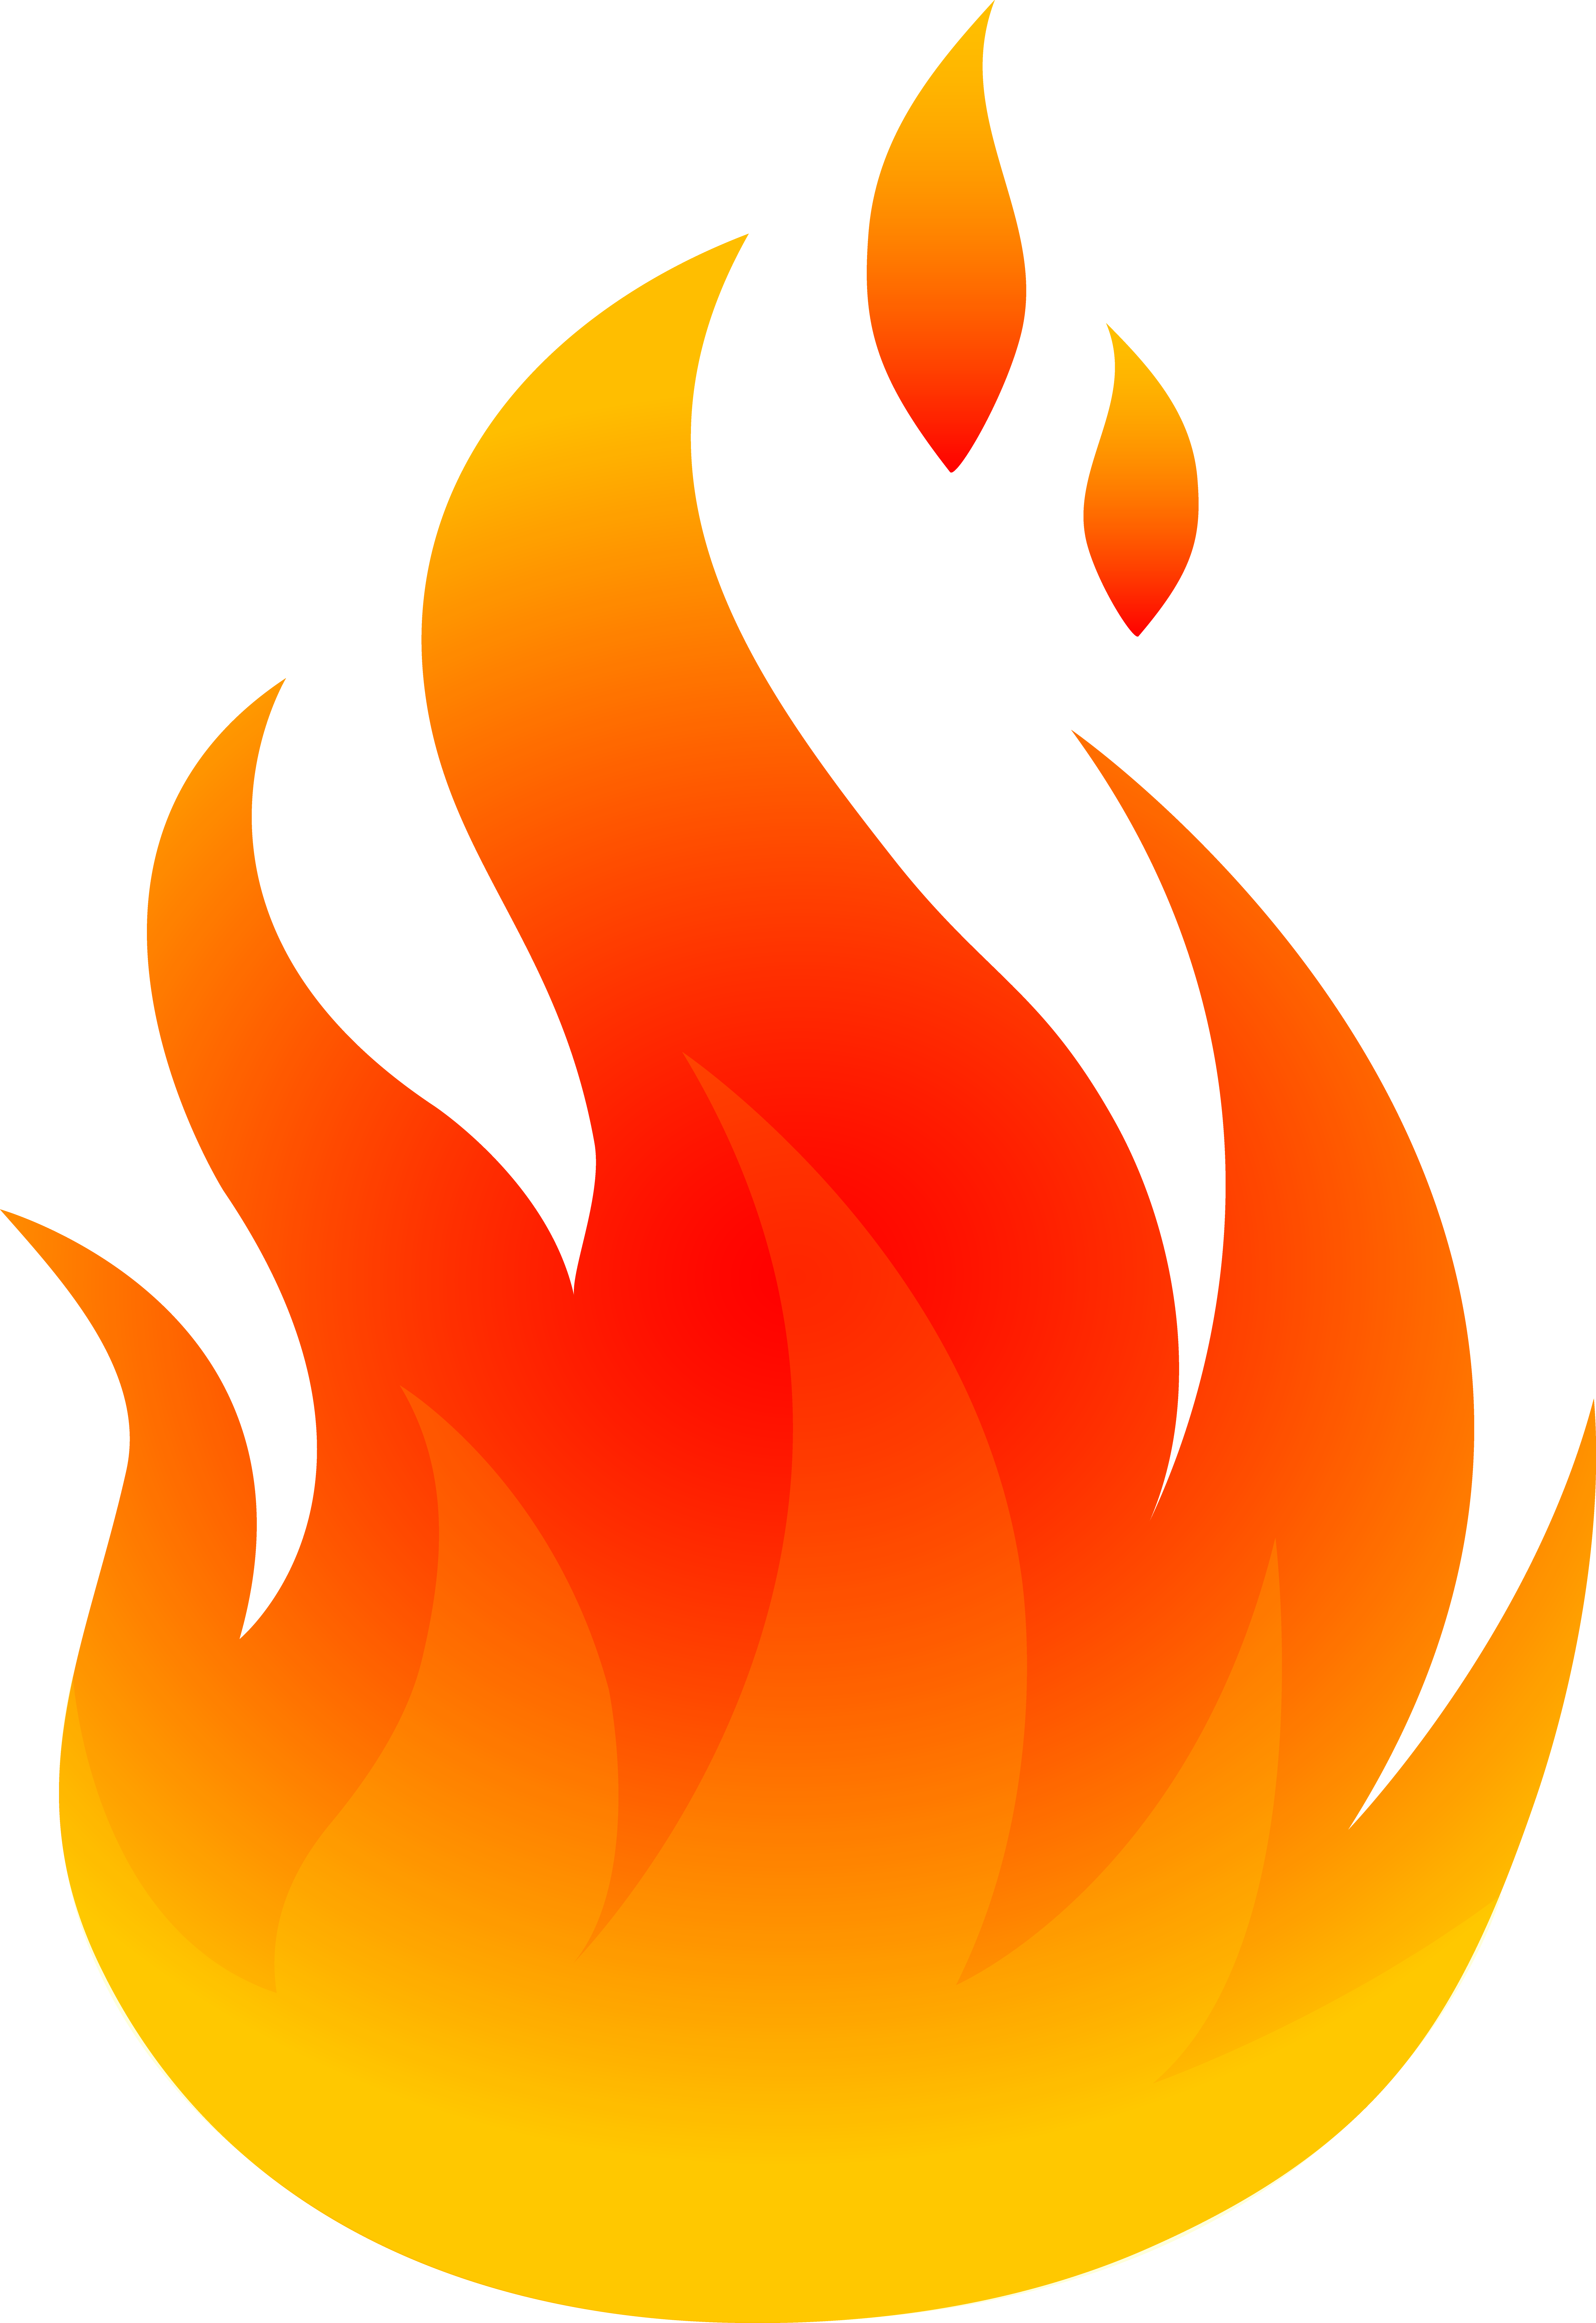 Fire clip art pictures. Flame border png